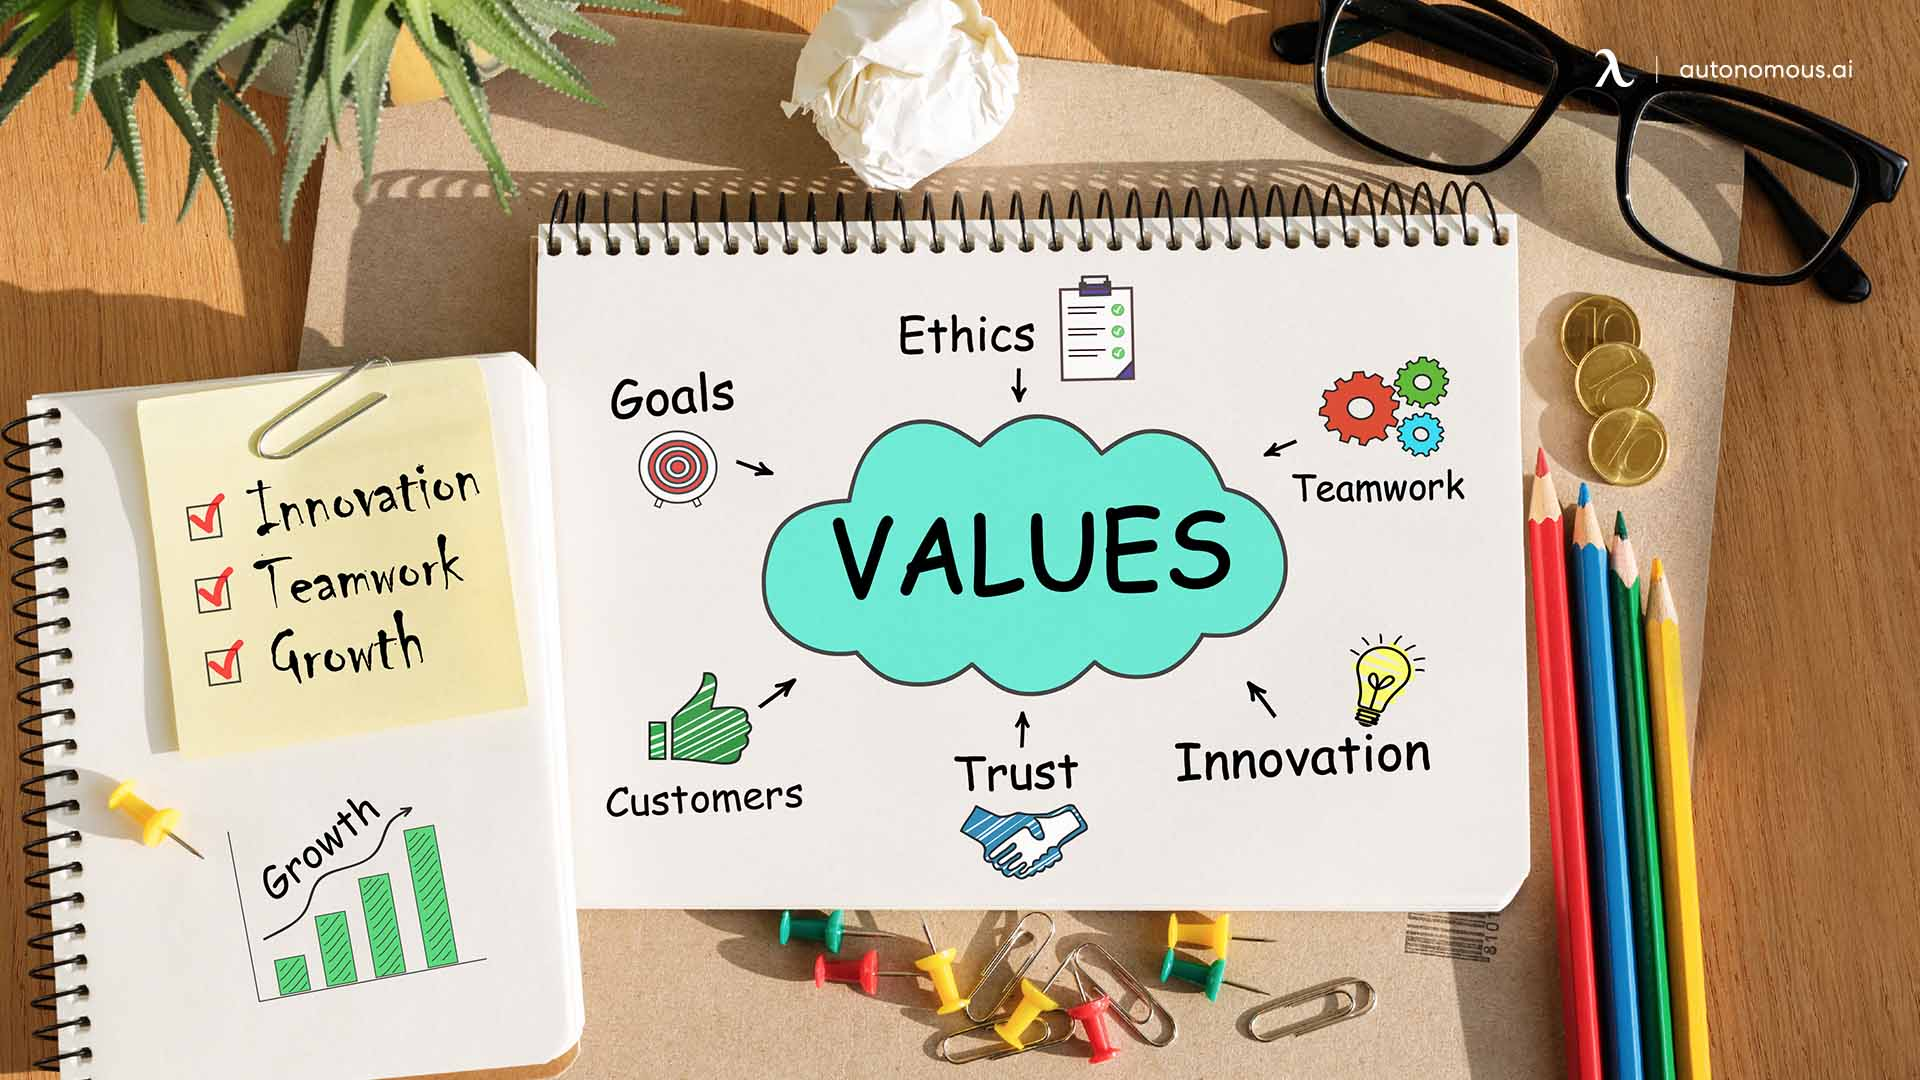 Embedding values in processes